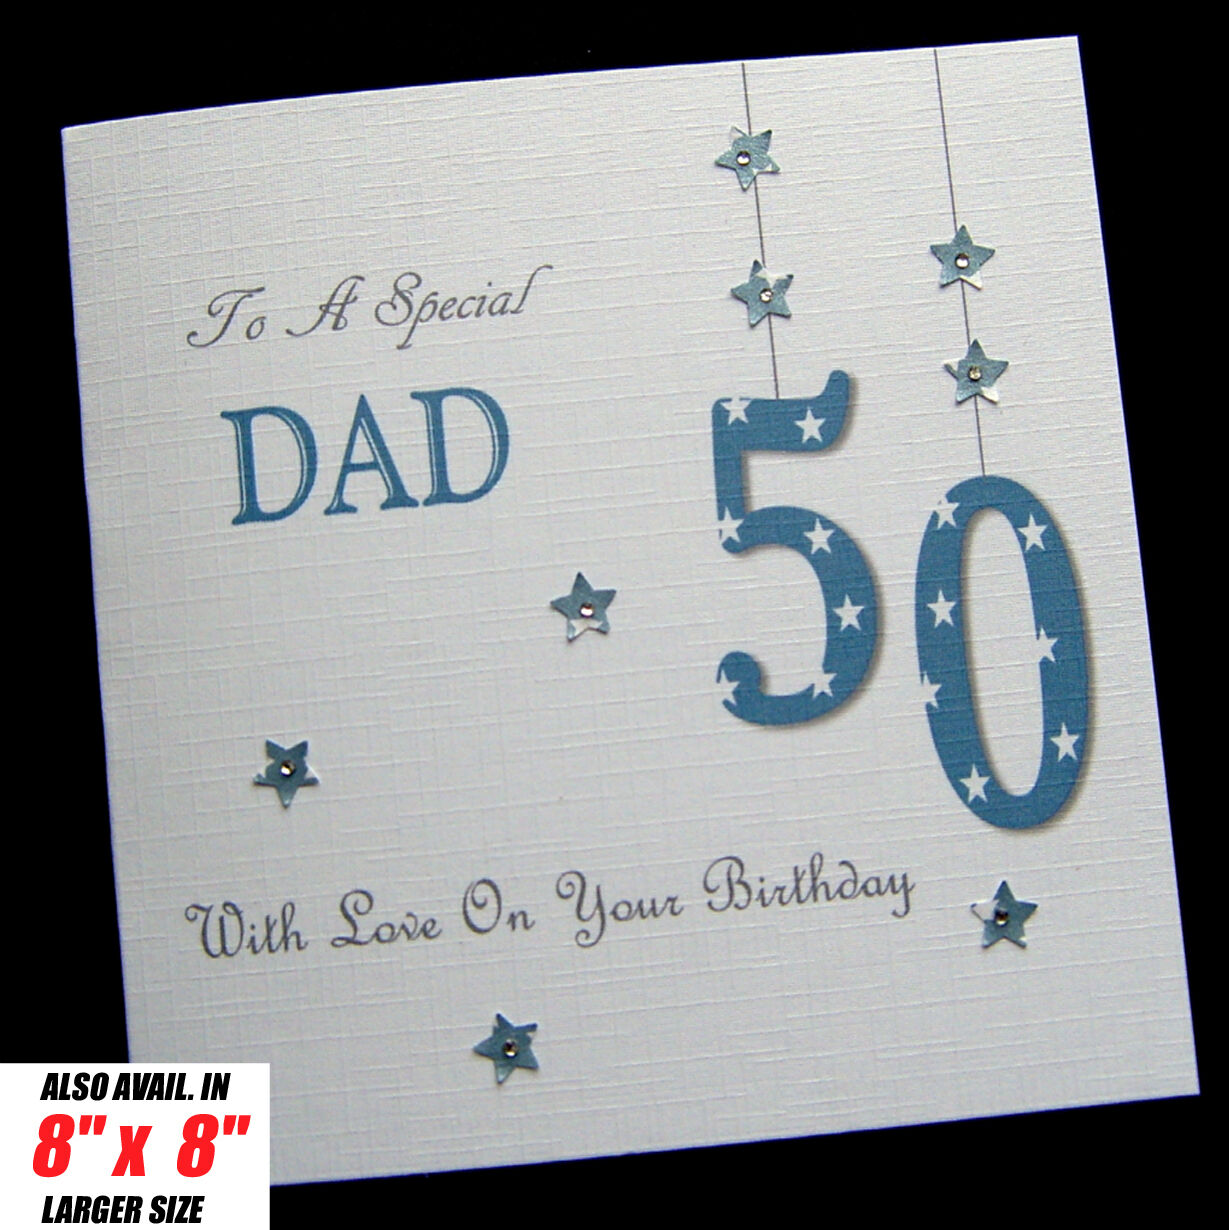 Personalised Handmade Birthday Card Dad Brother Son Grandad Husband Uncle Other 1 Of 1FREE Shipping